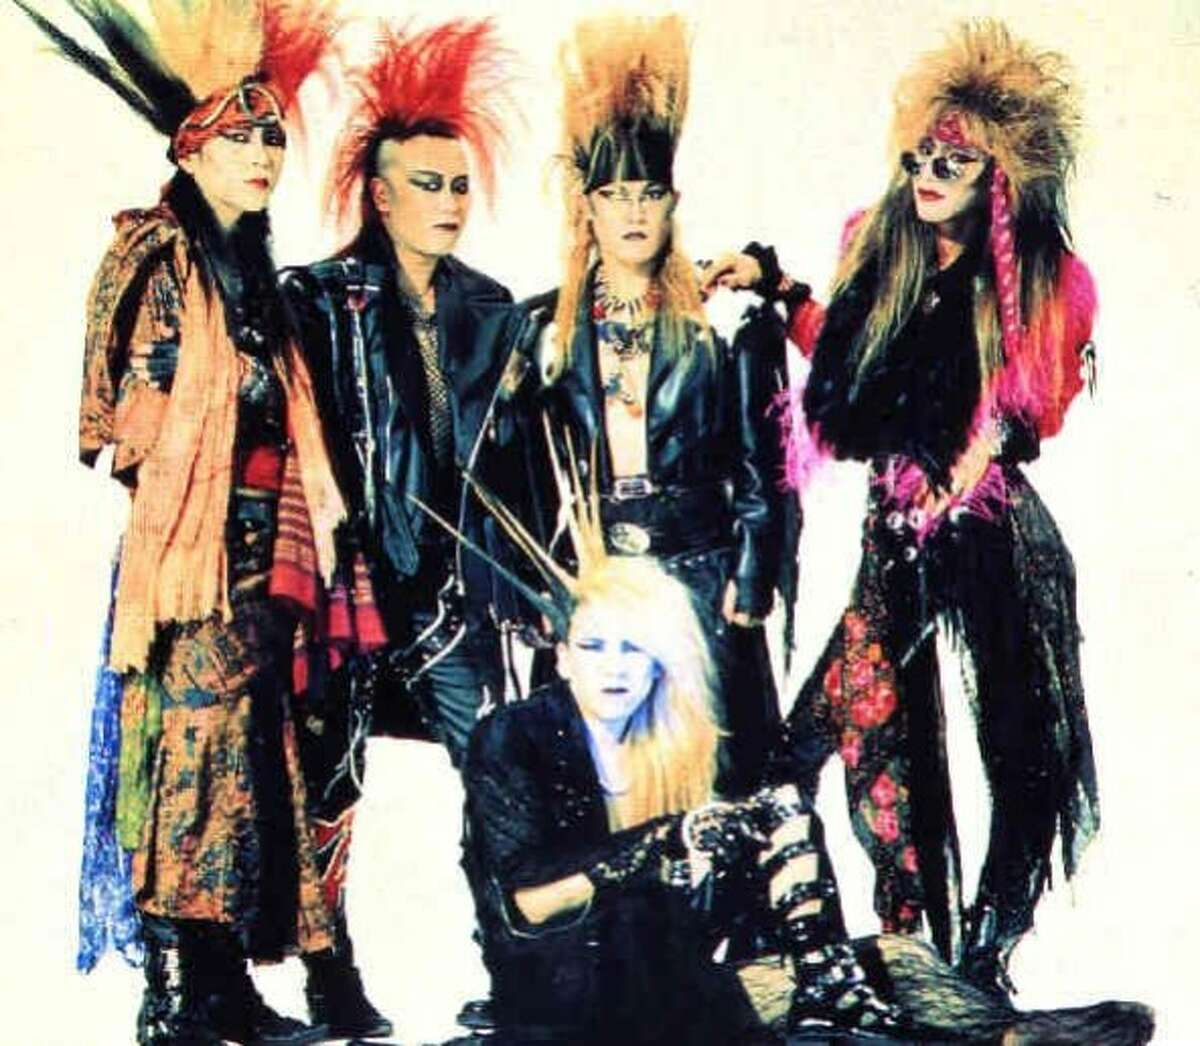 The band X Japan